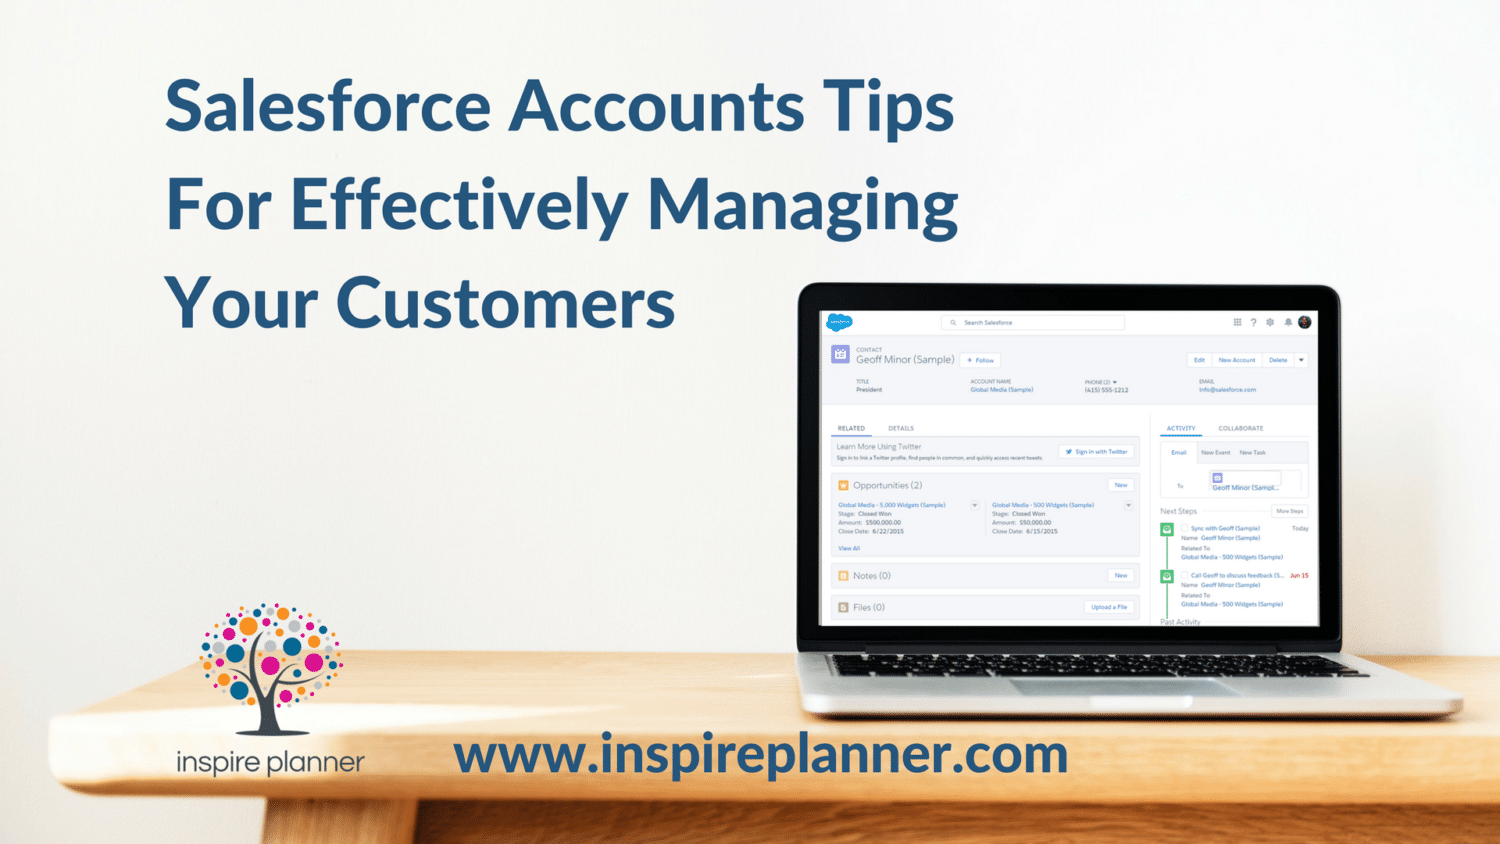 Salesforce Accounts Tips